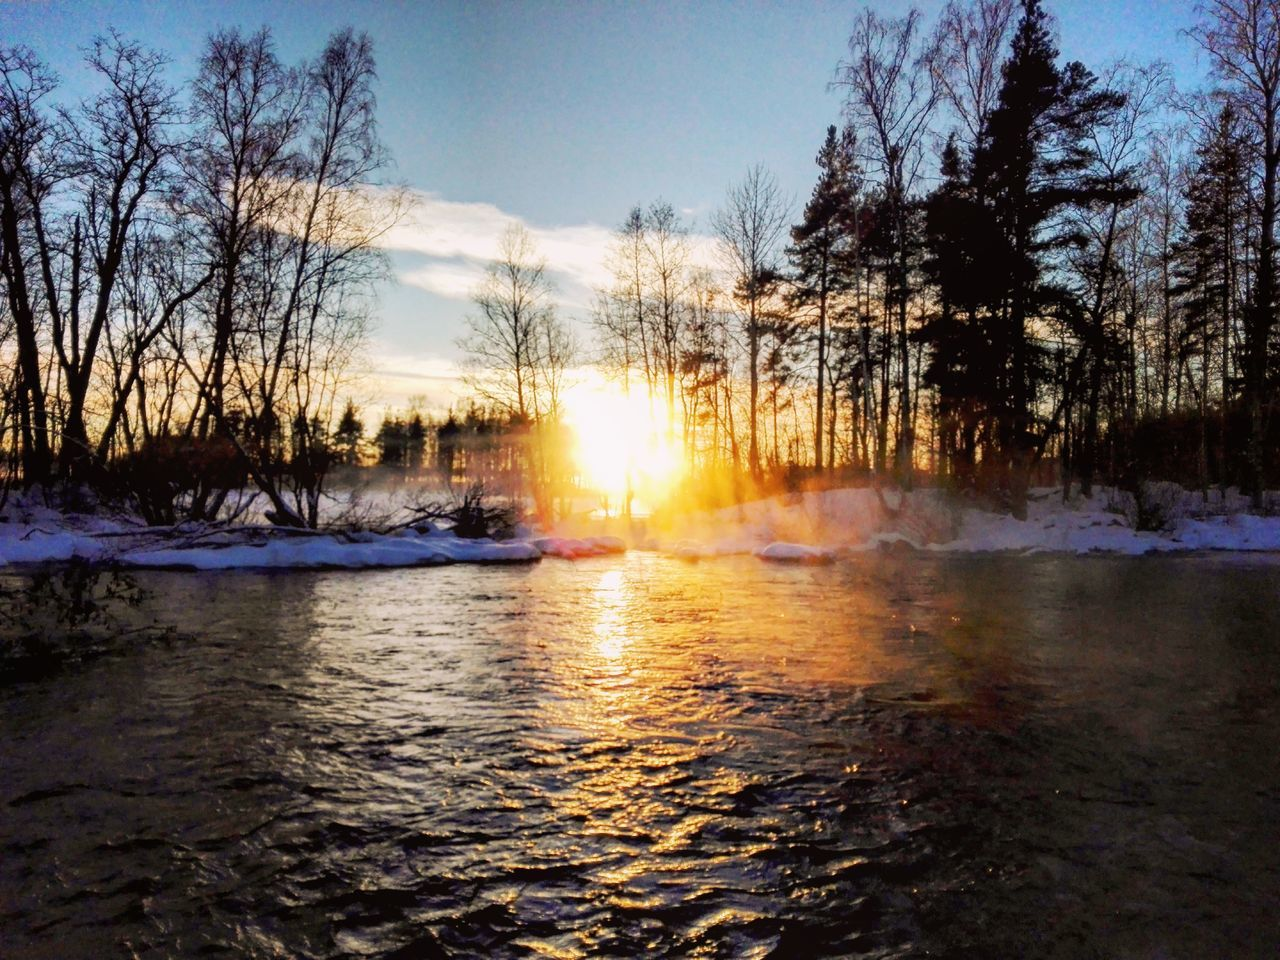 River and sun Sunset Nature Water Beauty In Nature Flowing Water Naturepath Naturelovers Finnish Nature Photography Photographer Nature Photography Snow ❄ Landscape_photography Winter Landscape Cold Temperature Colourful Naturebeauty Wintertime Outdoors